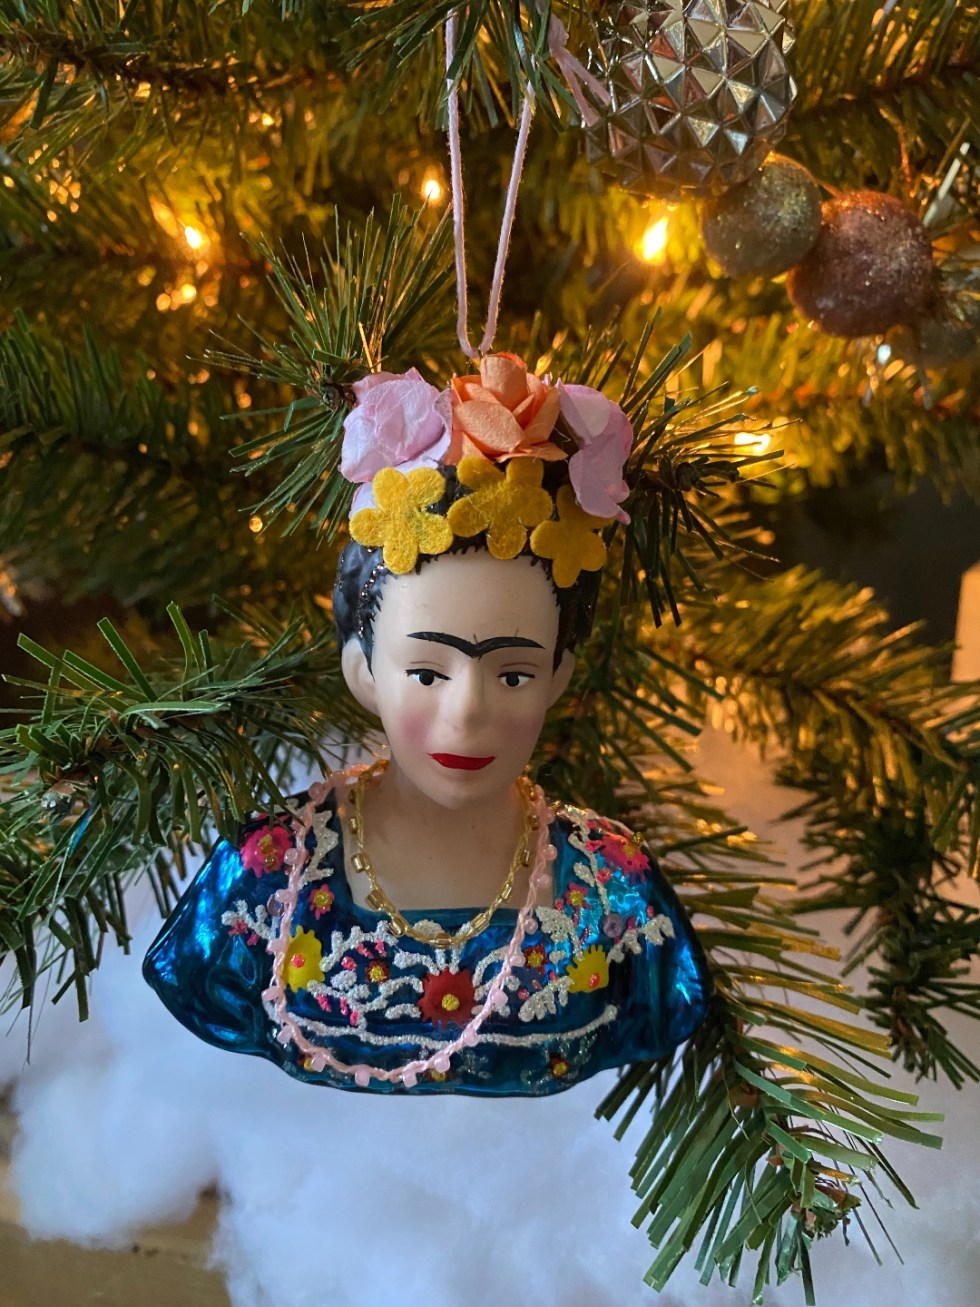 2020 Holidays: Unique Christmas Ornaments - I'm Fixin' To - @mbg0112 |Unique Christmas Ornaments by popular NC life and style blog, I'm Fixin' To: image of a Frida Kahlo ornament.